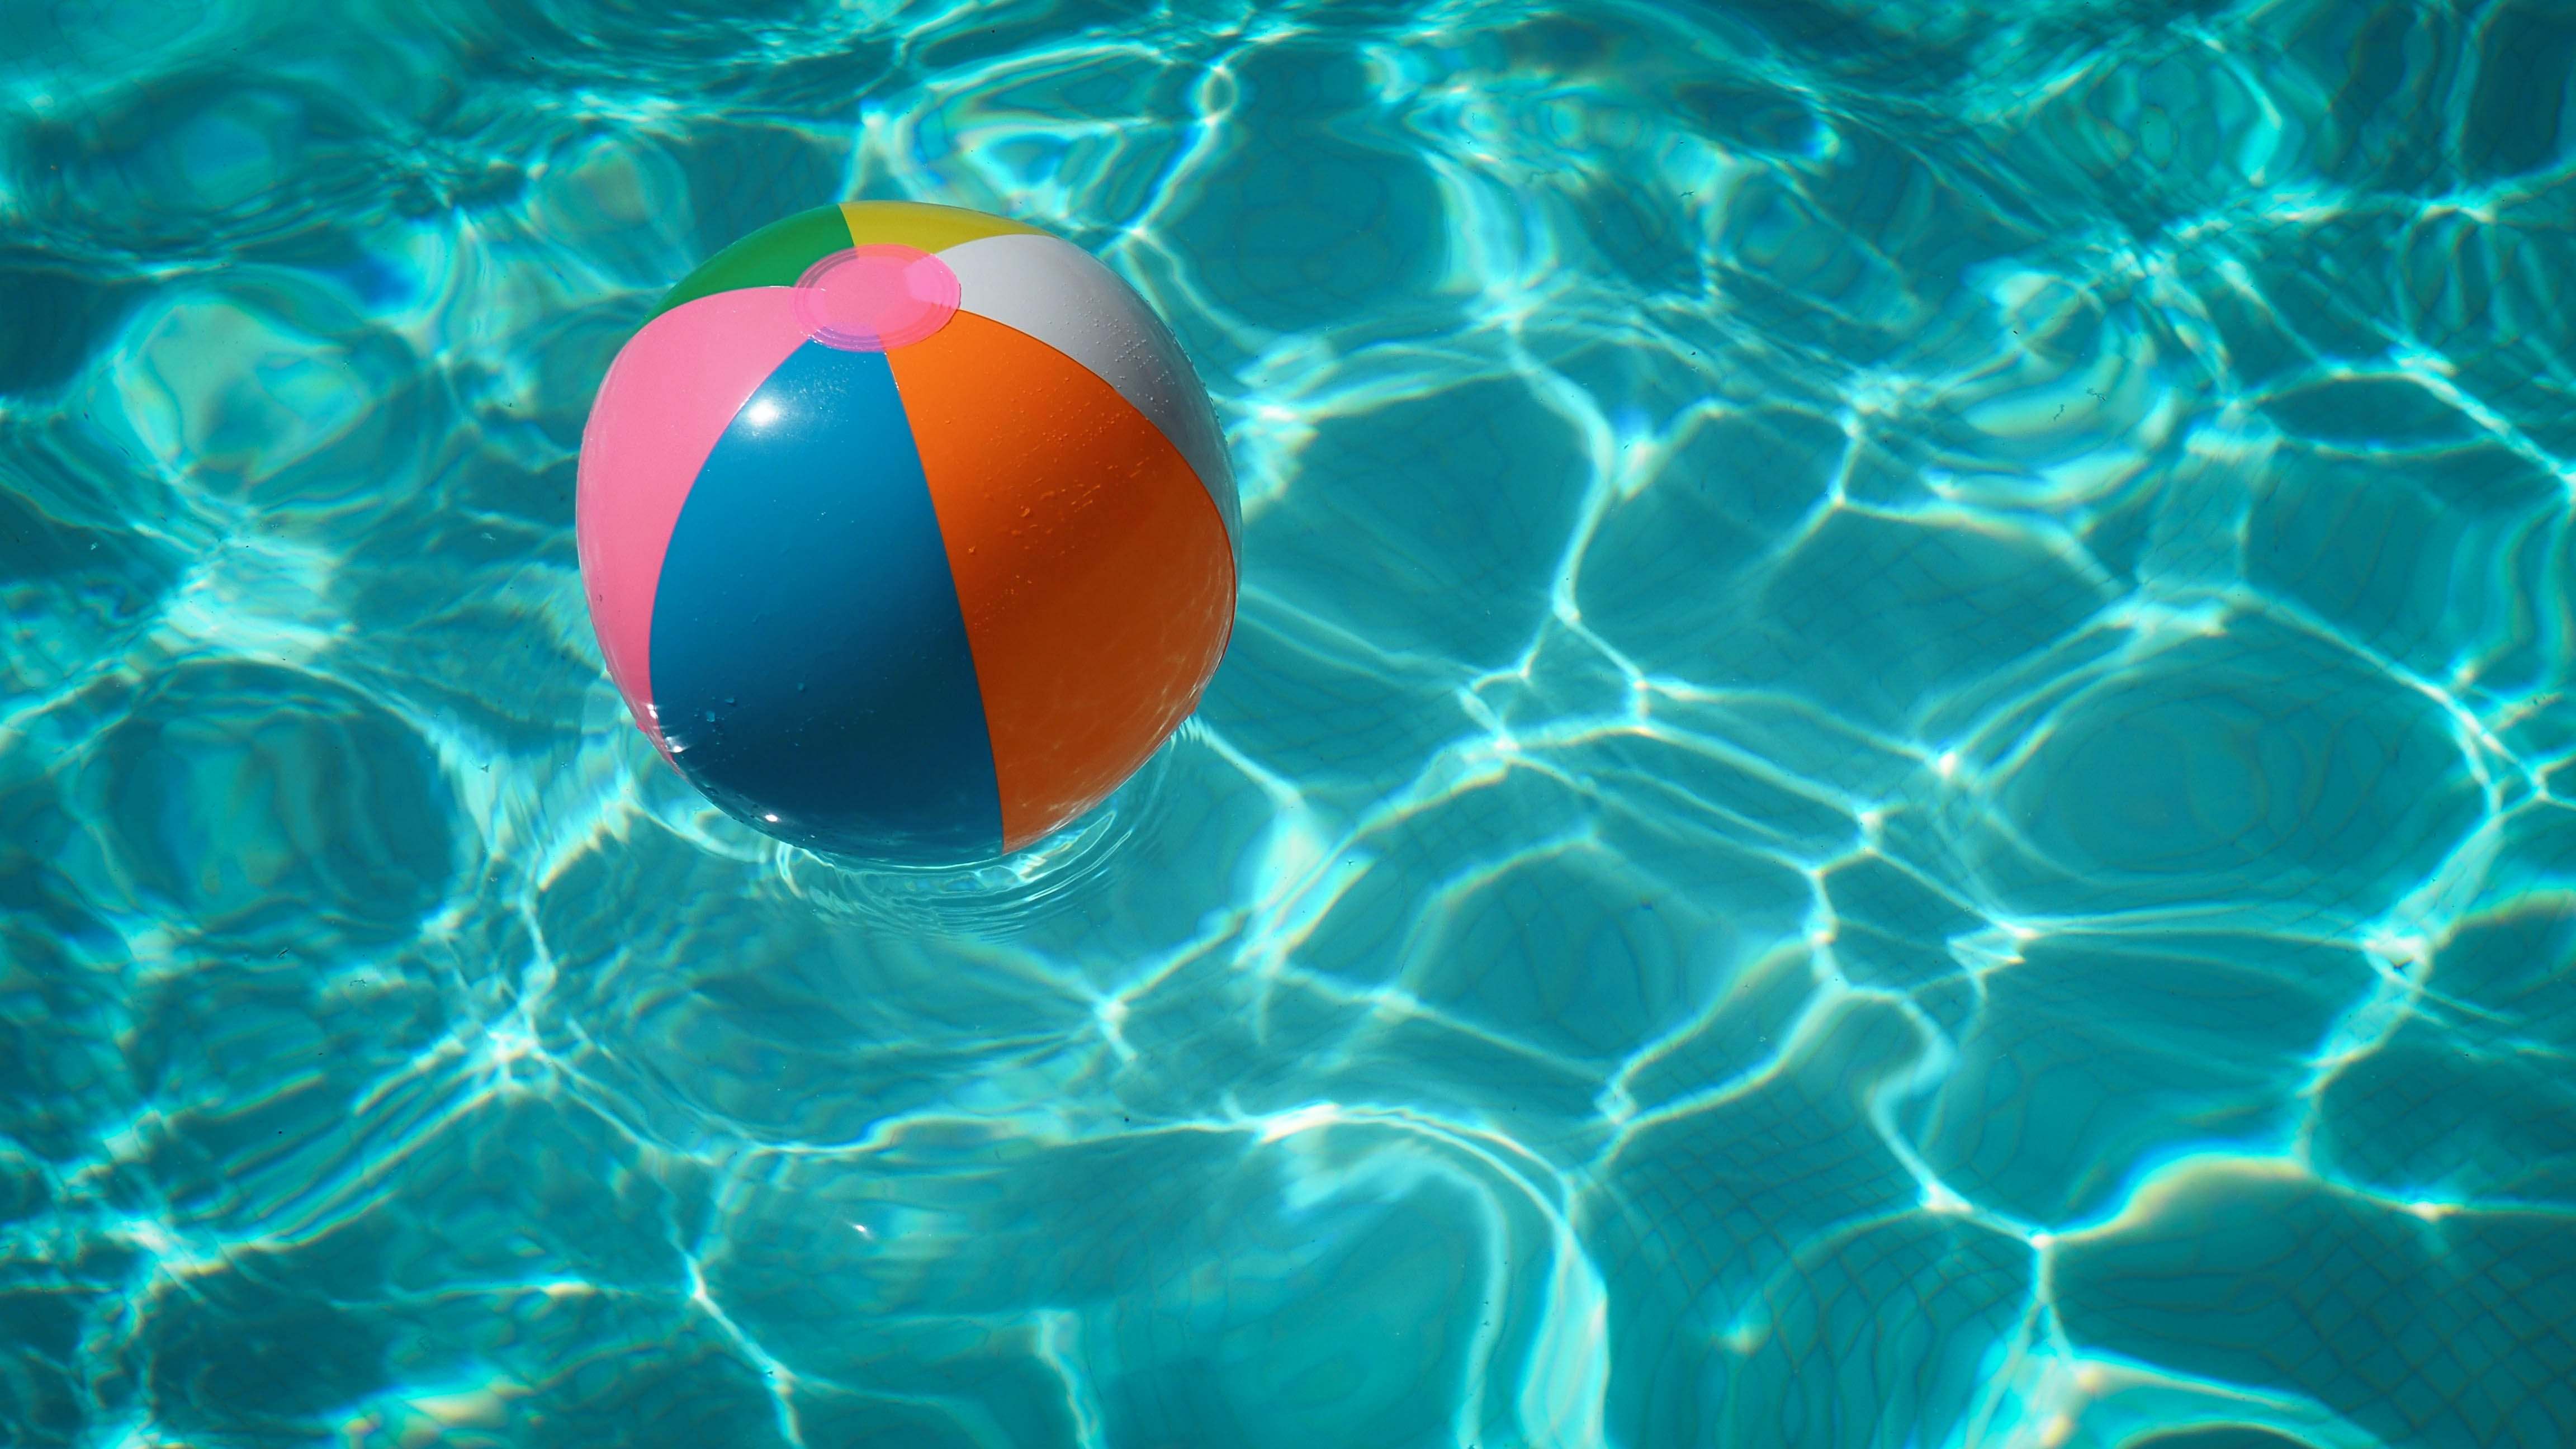 A beach ball floating on water in a swimming pool